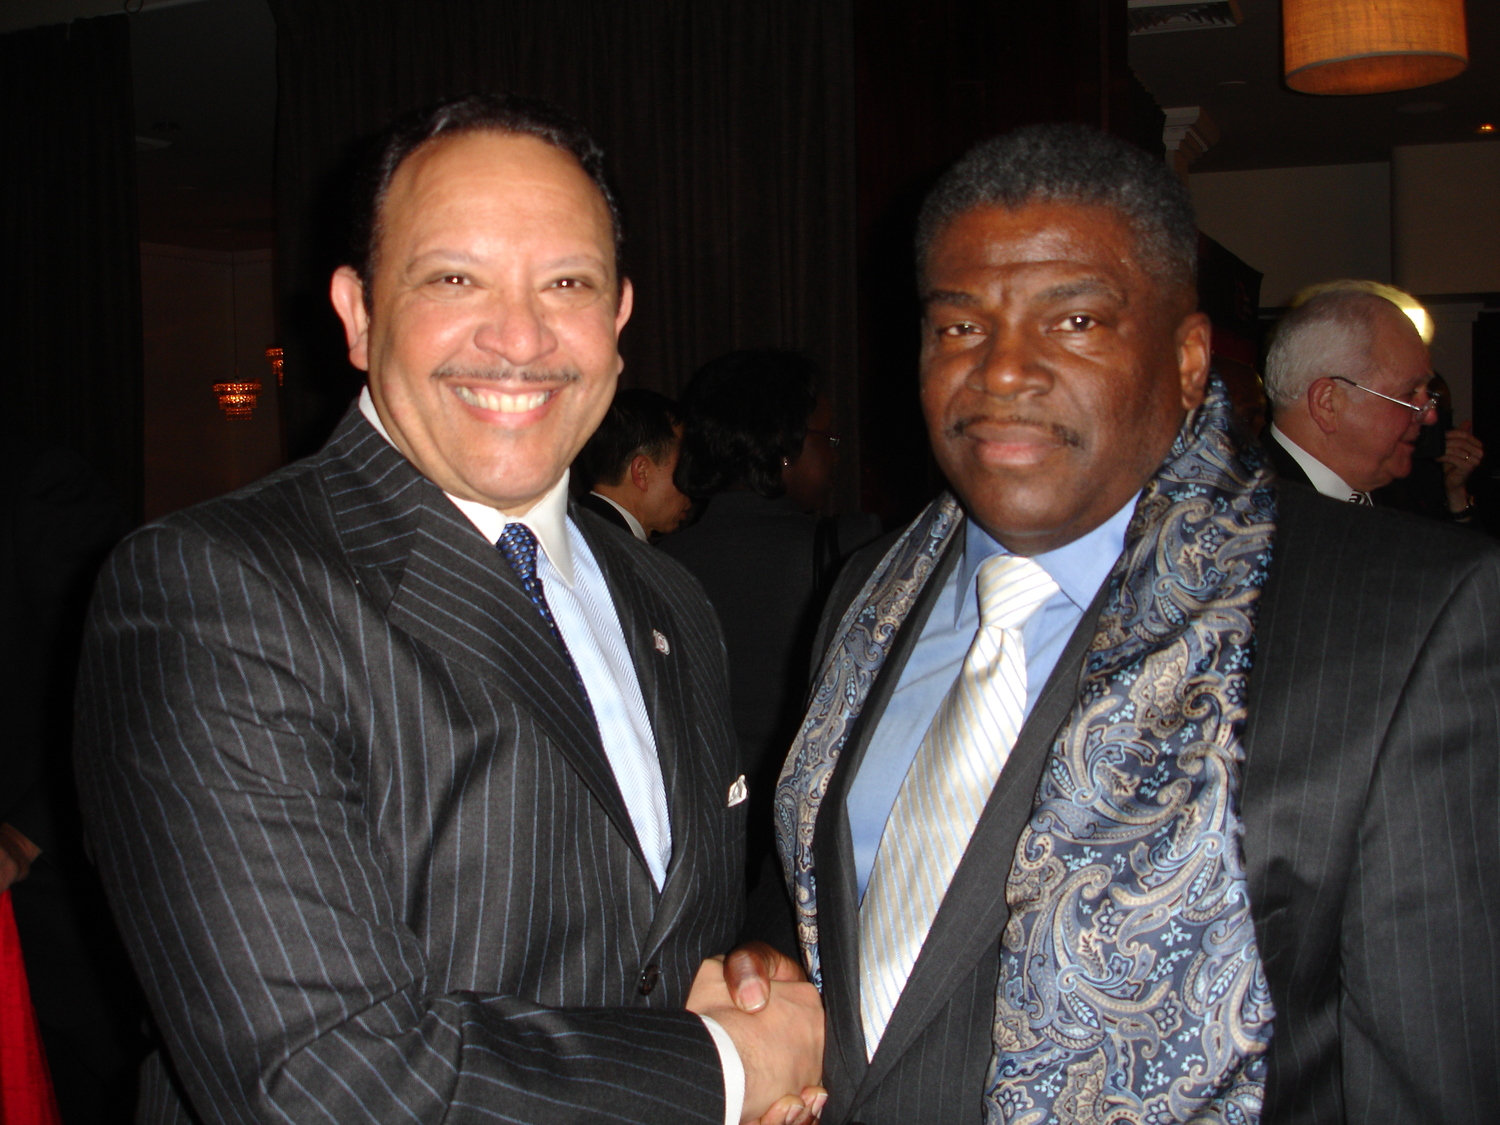 National Urban League President & CEO, Marc H. Morial and Adrian Harpool